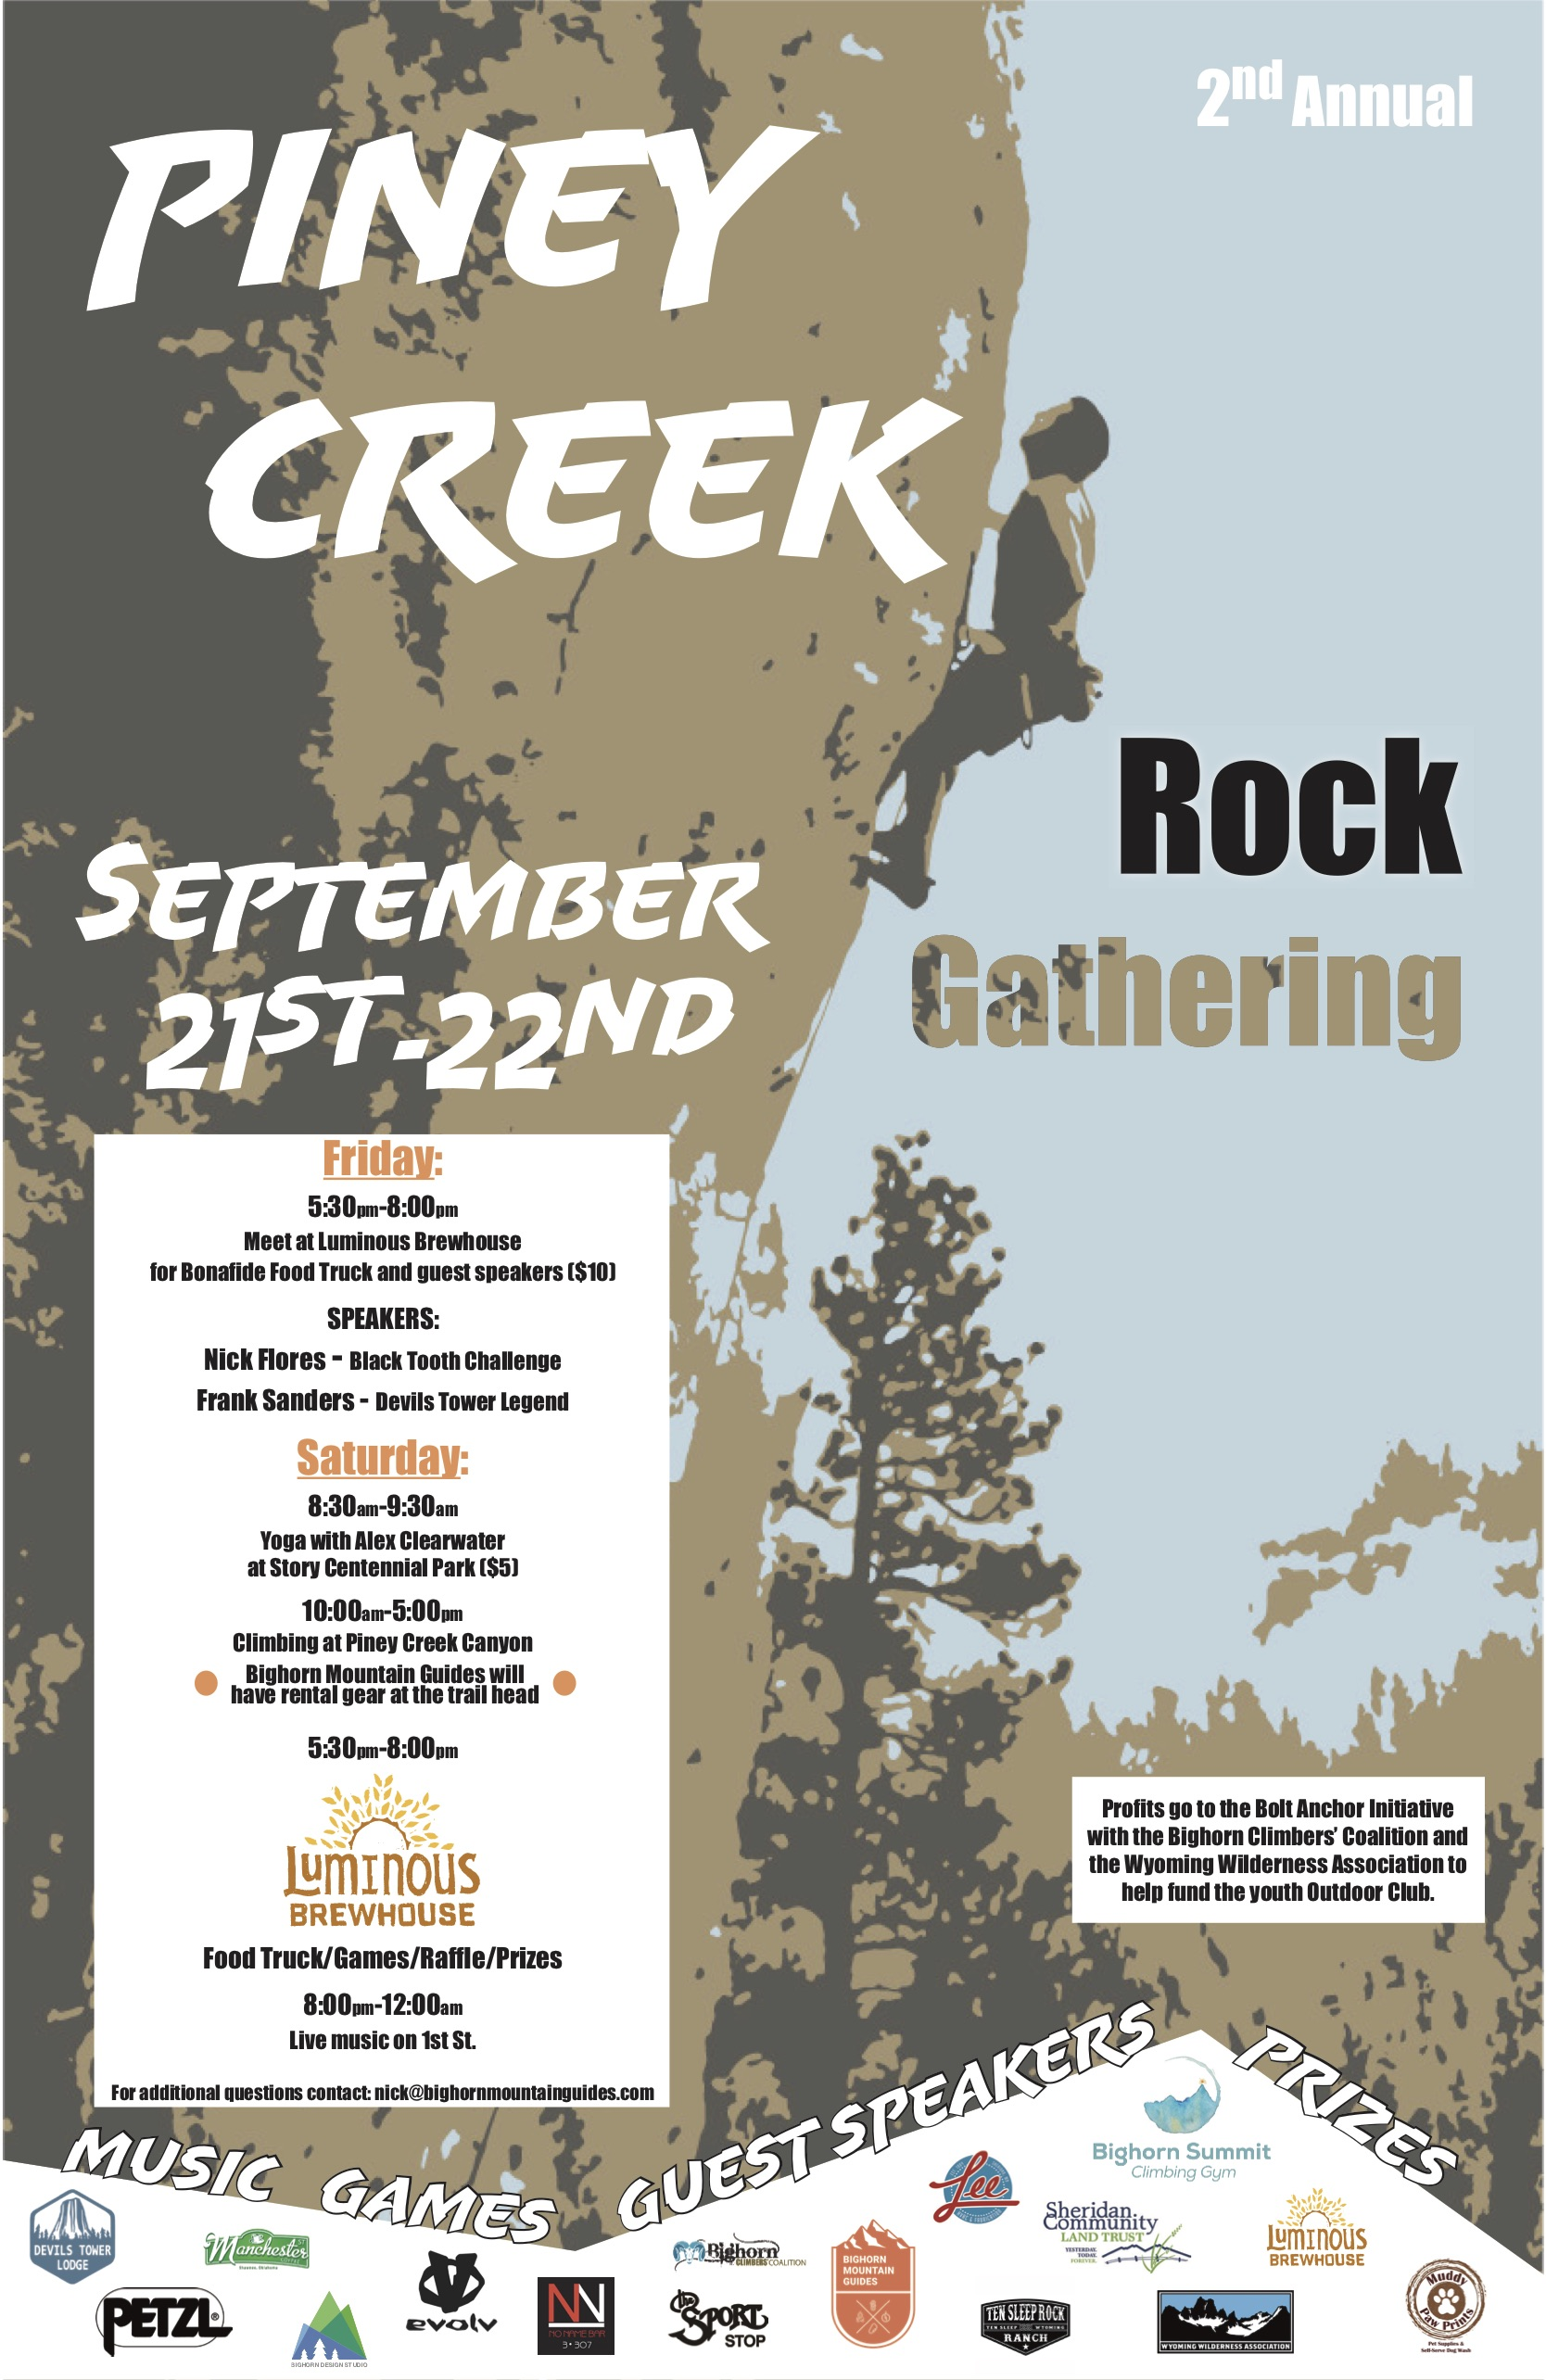 2nd Annual Piney Creek Rock Gathering.jpg